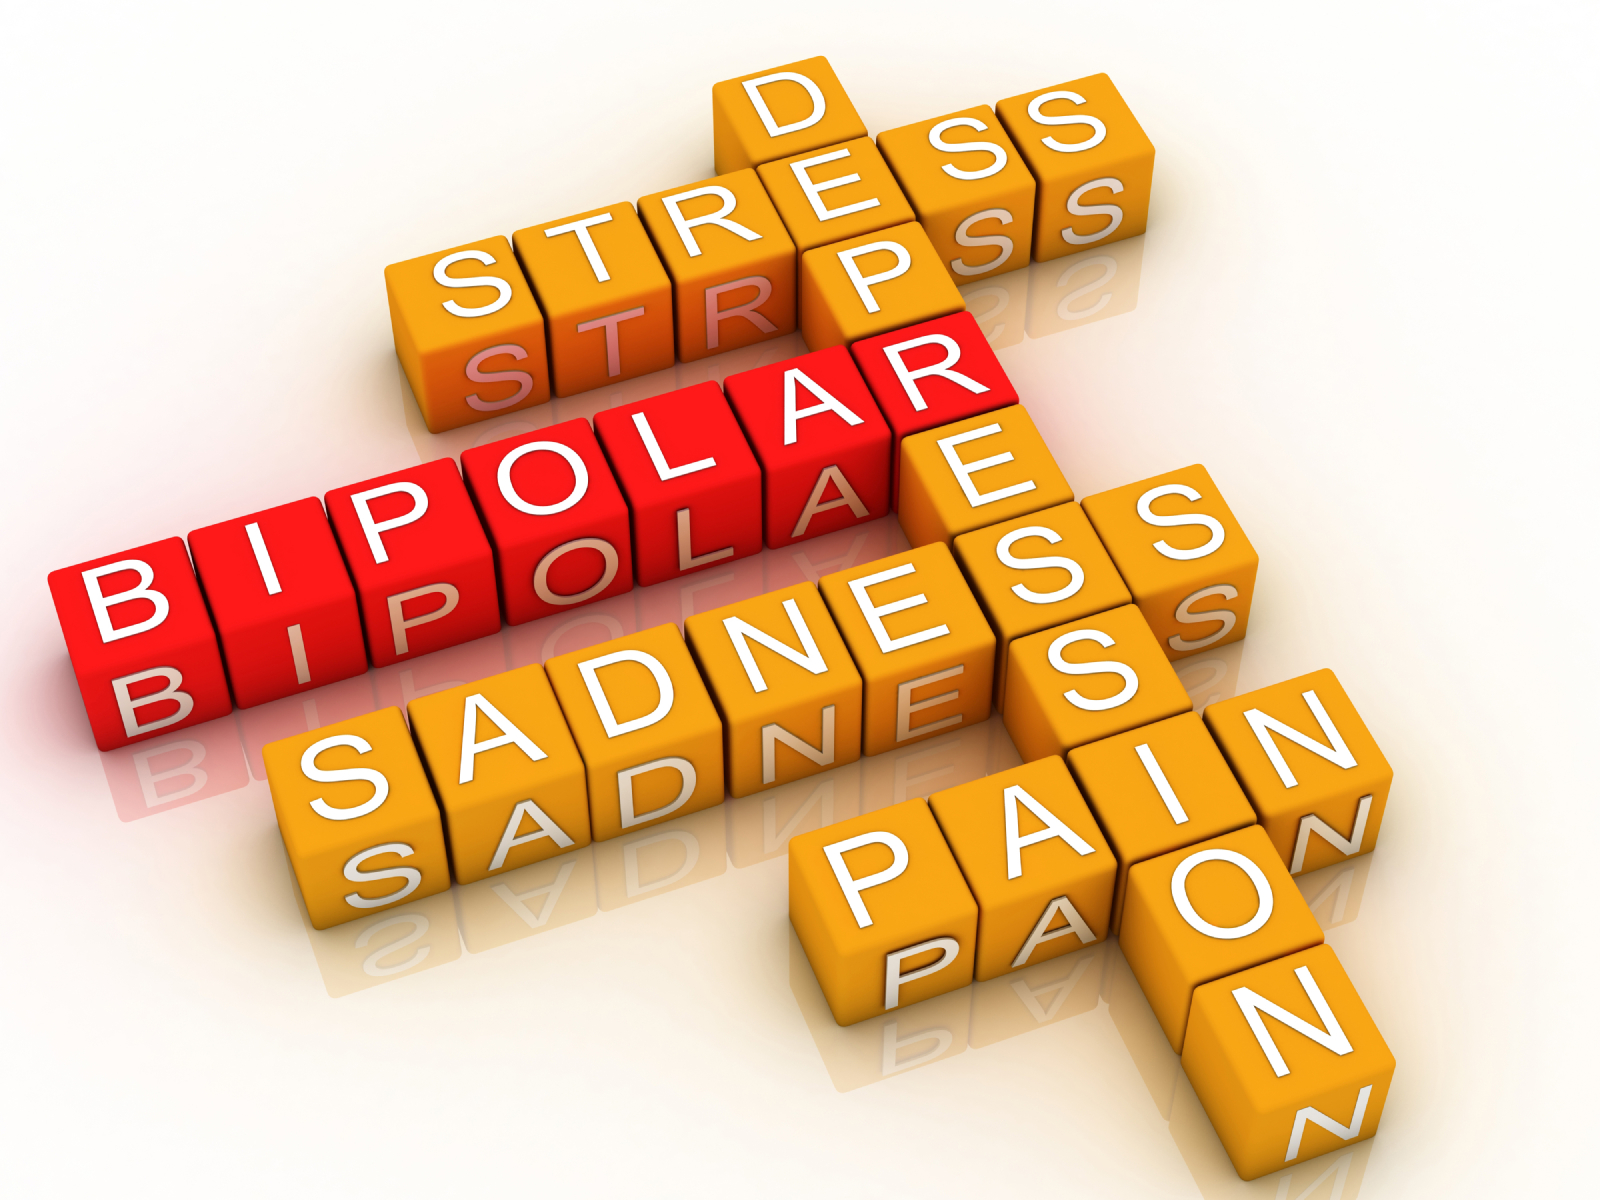 unipolar or bipolar disorder the million dollar question unipolar or bipolar disorder